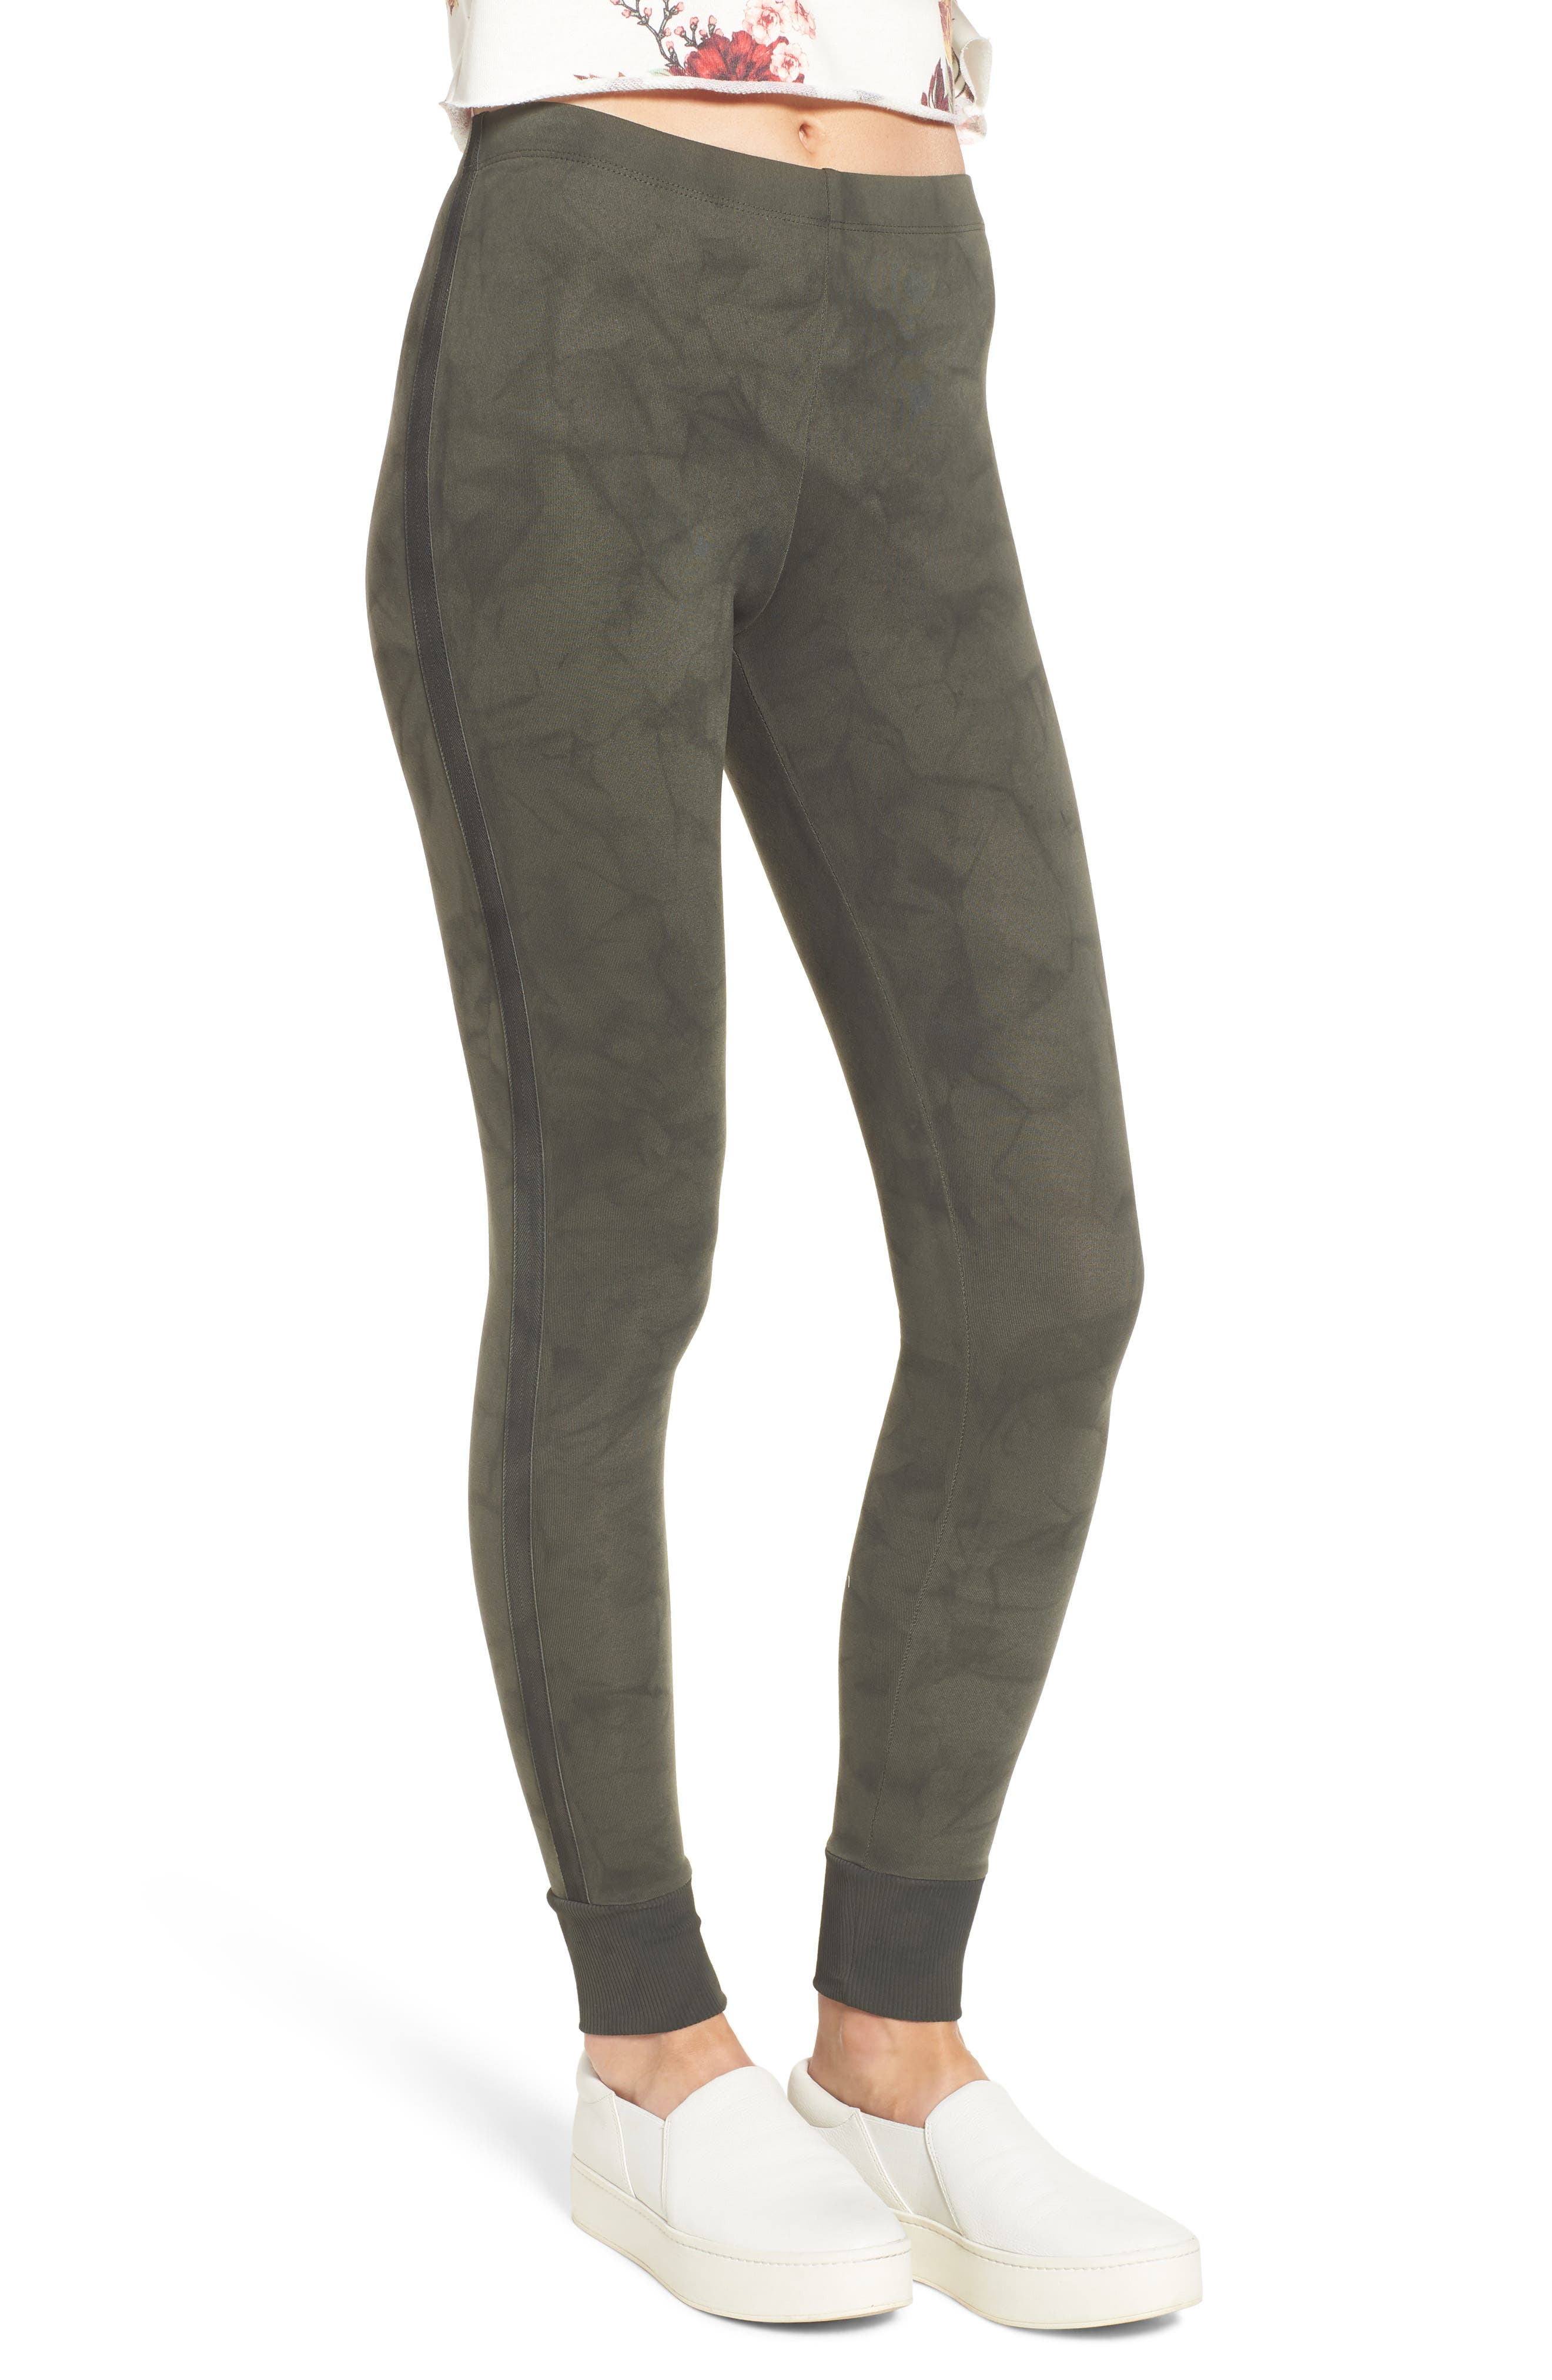 Kiely Ribbed Cuff Leggings,                             Alternate thumbnail 3, color,                             Army Green